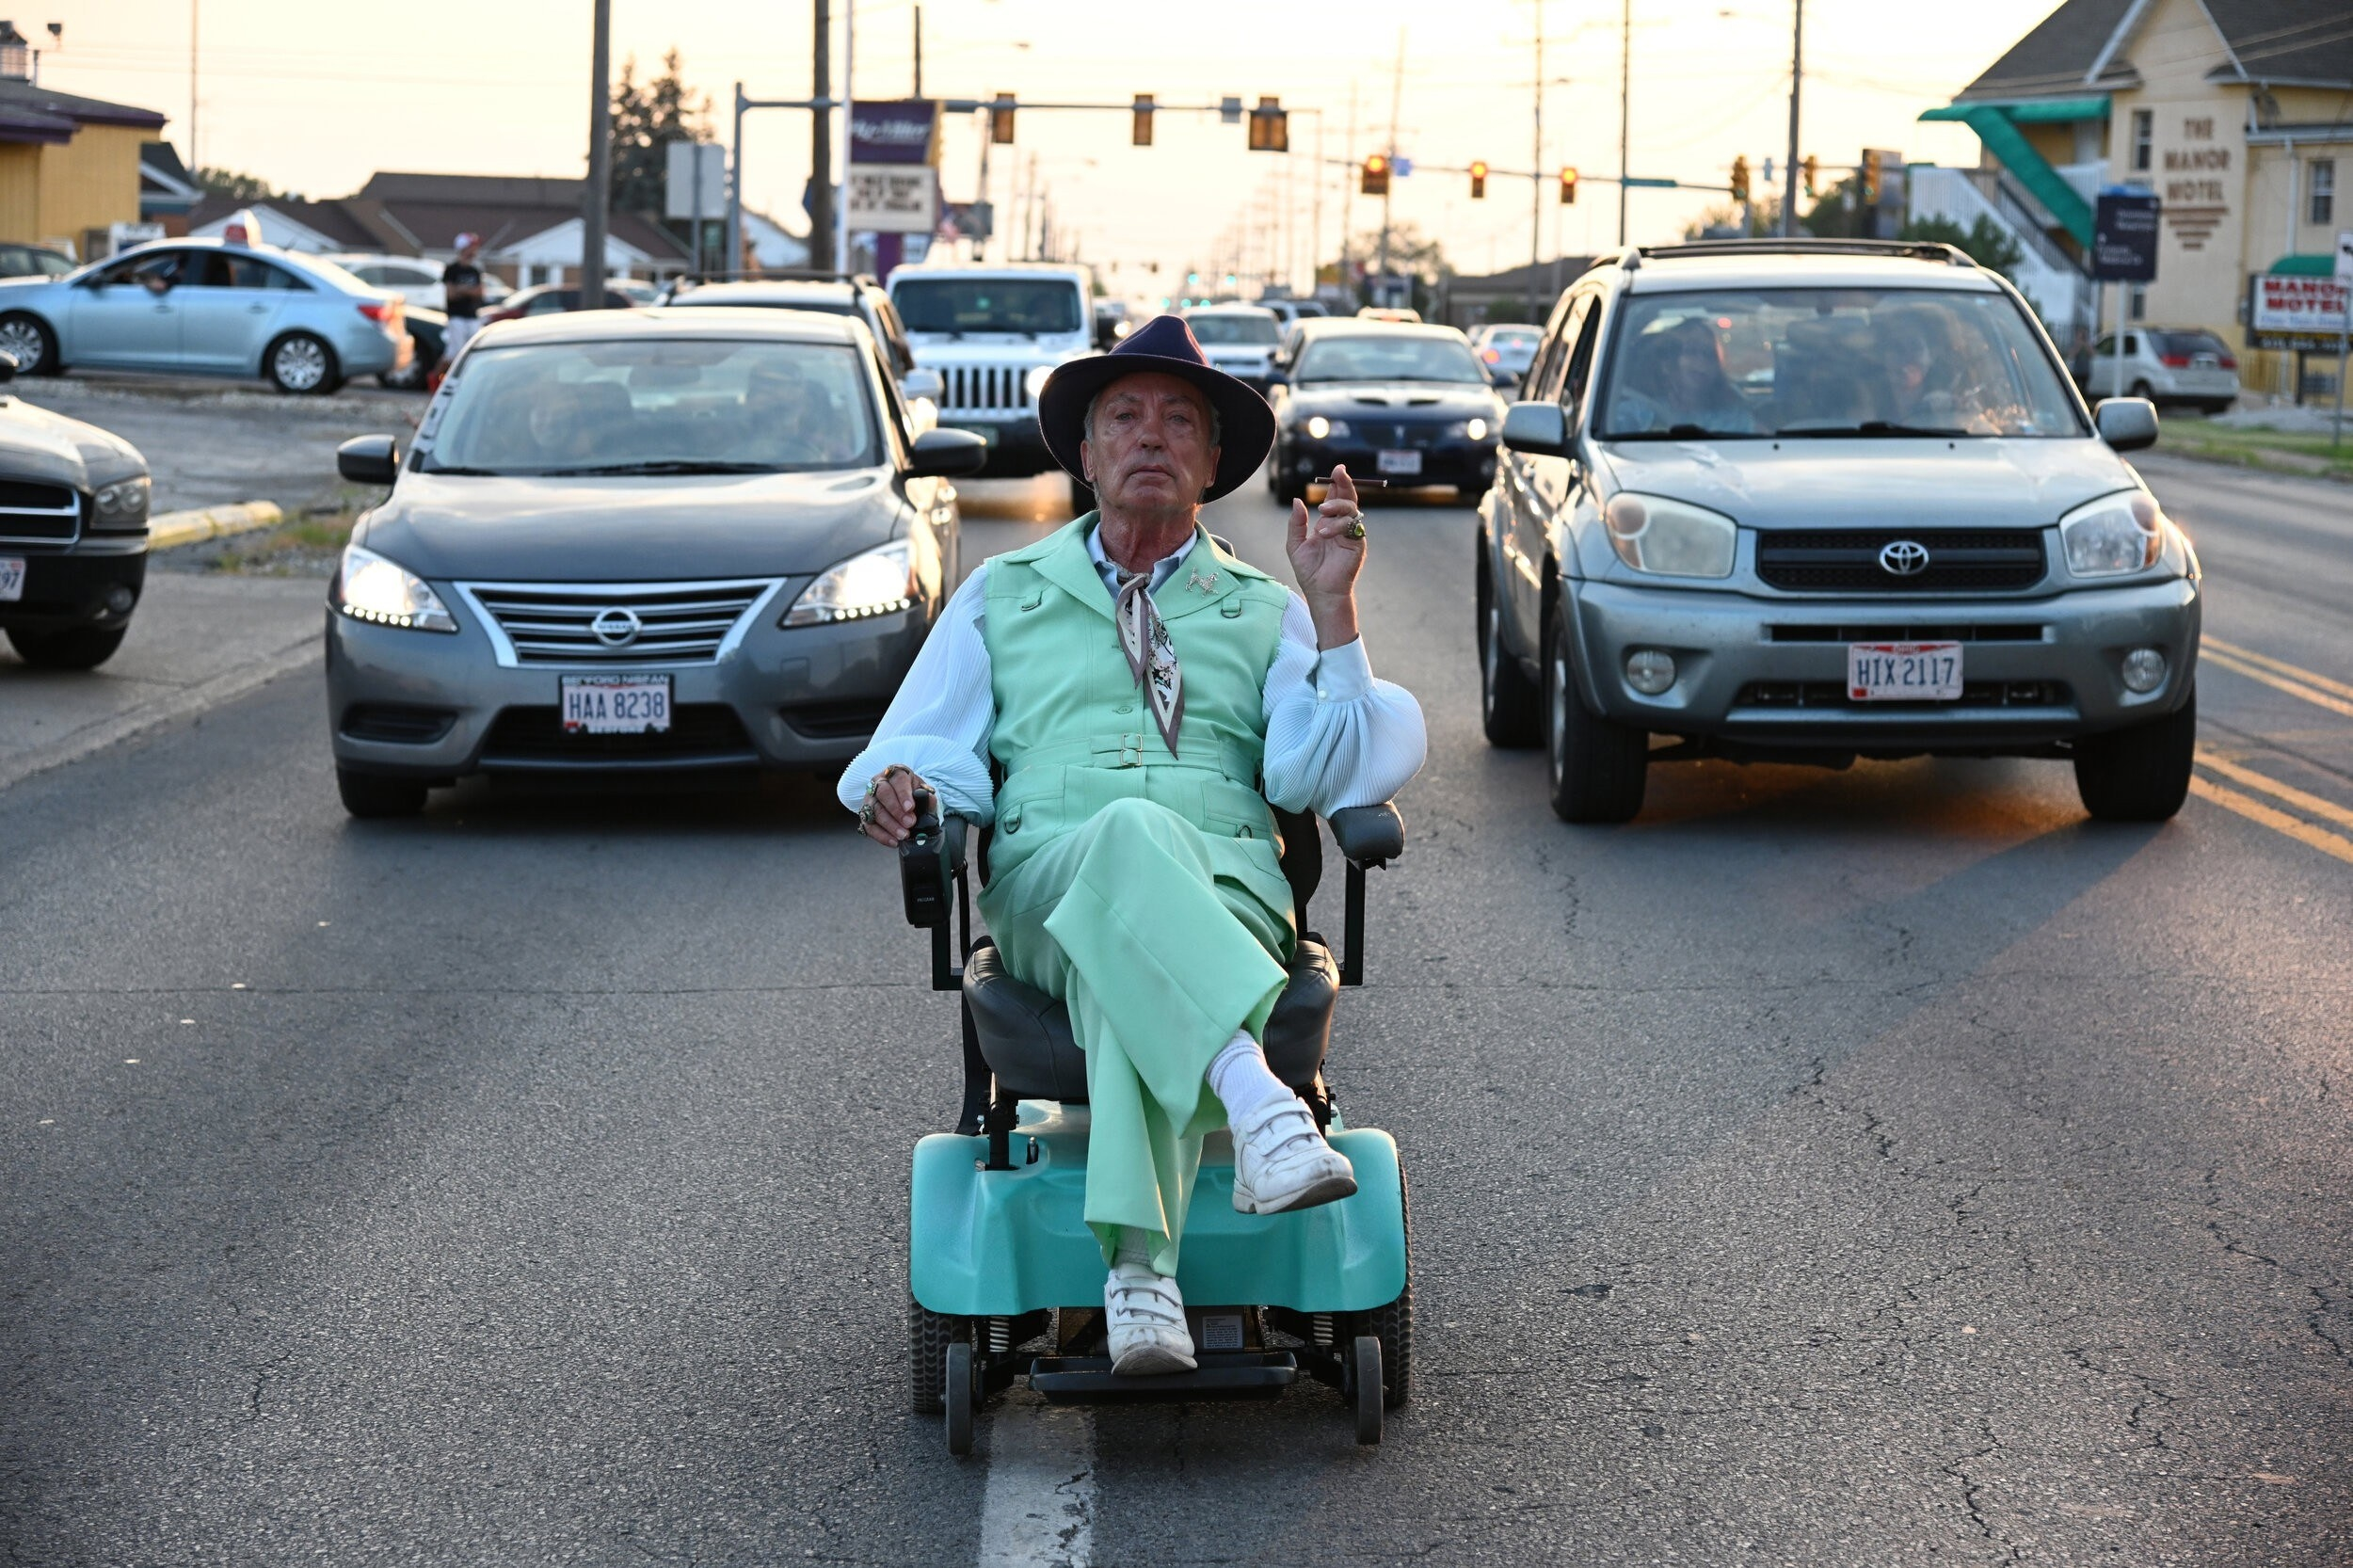 Udo Kier sits in a motorized chair in the middle of the road